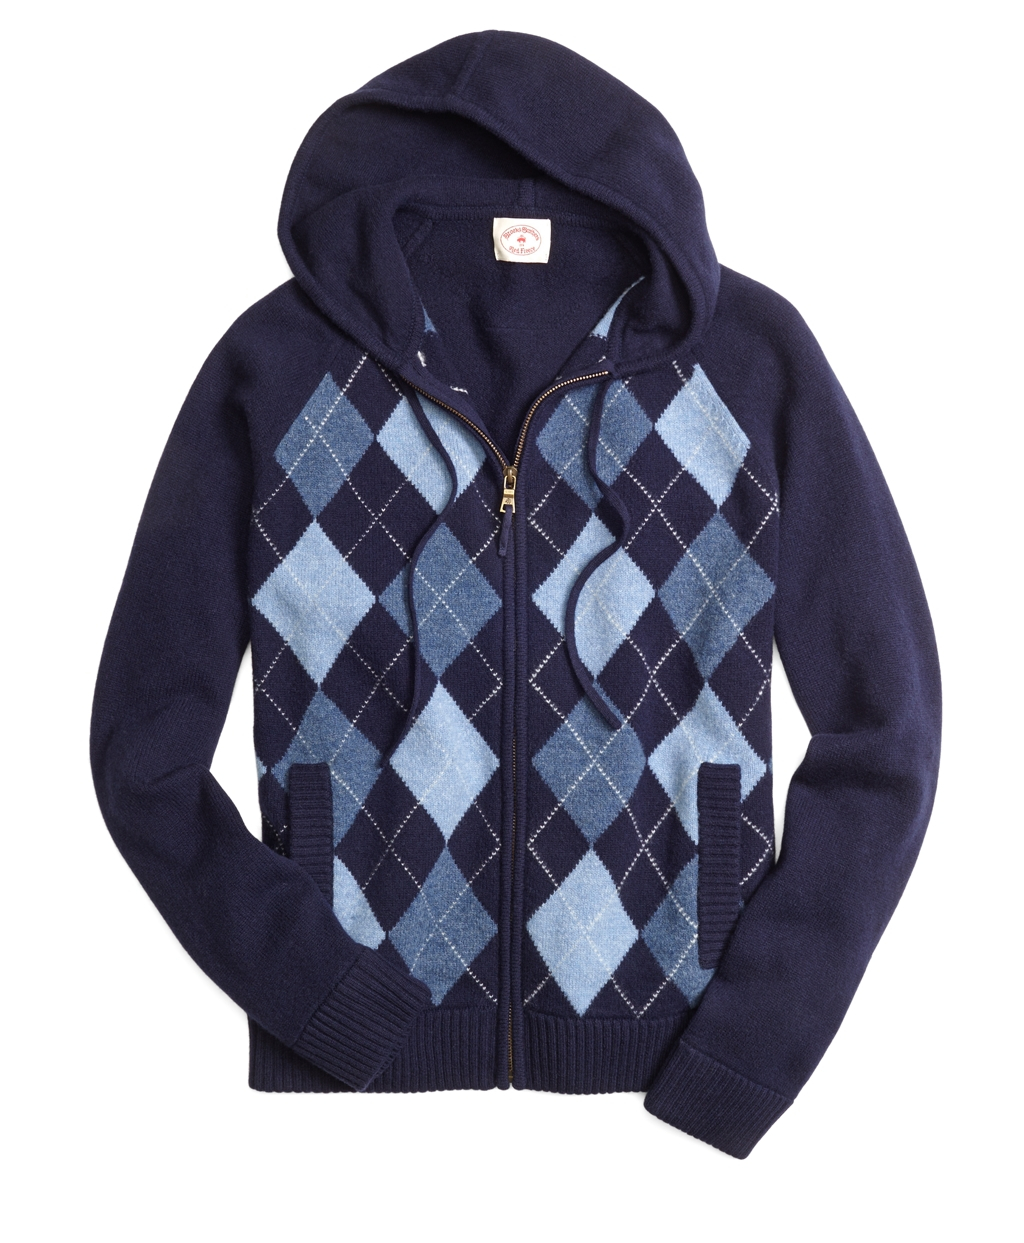 8d659ec88d61 Lyst - Brooks Brothers Argyle Hooded Sweater in Blue for Men